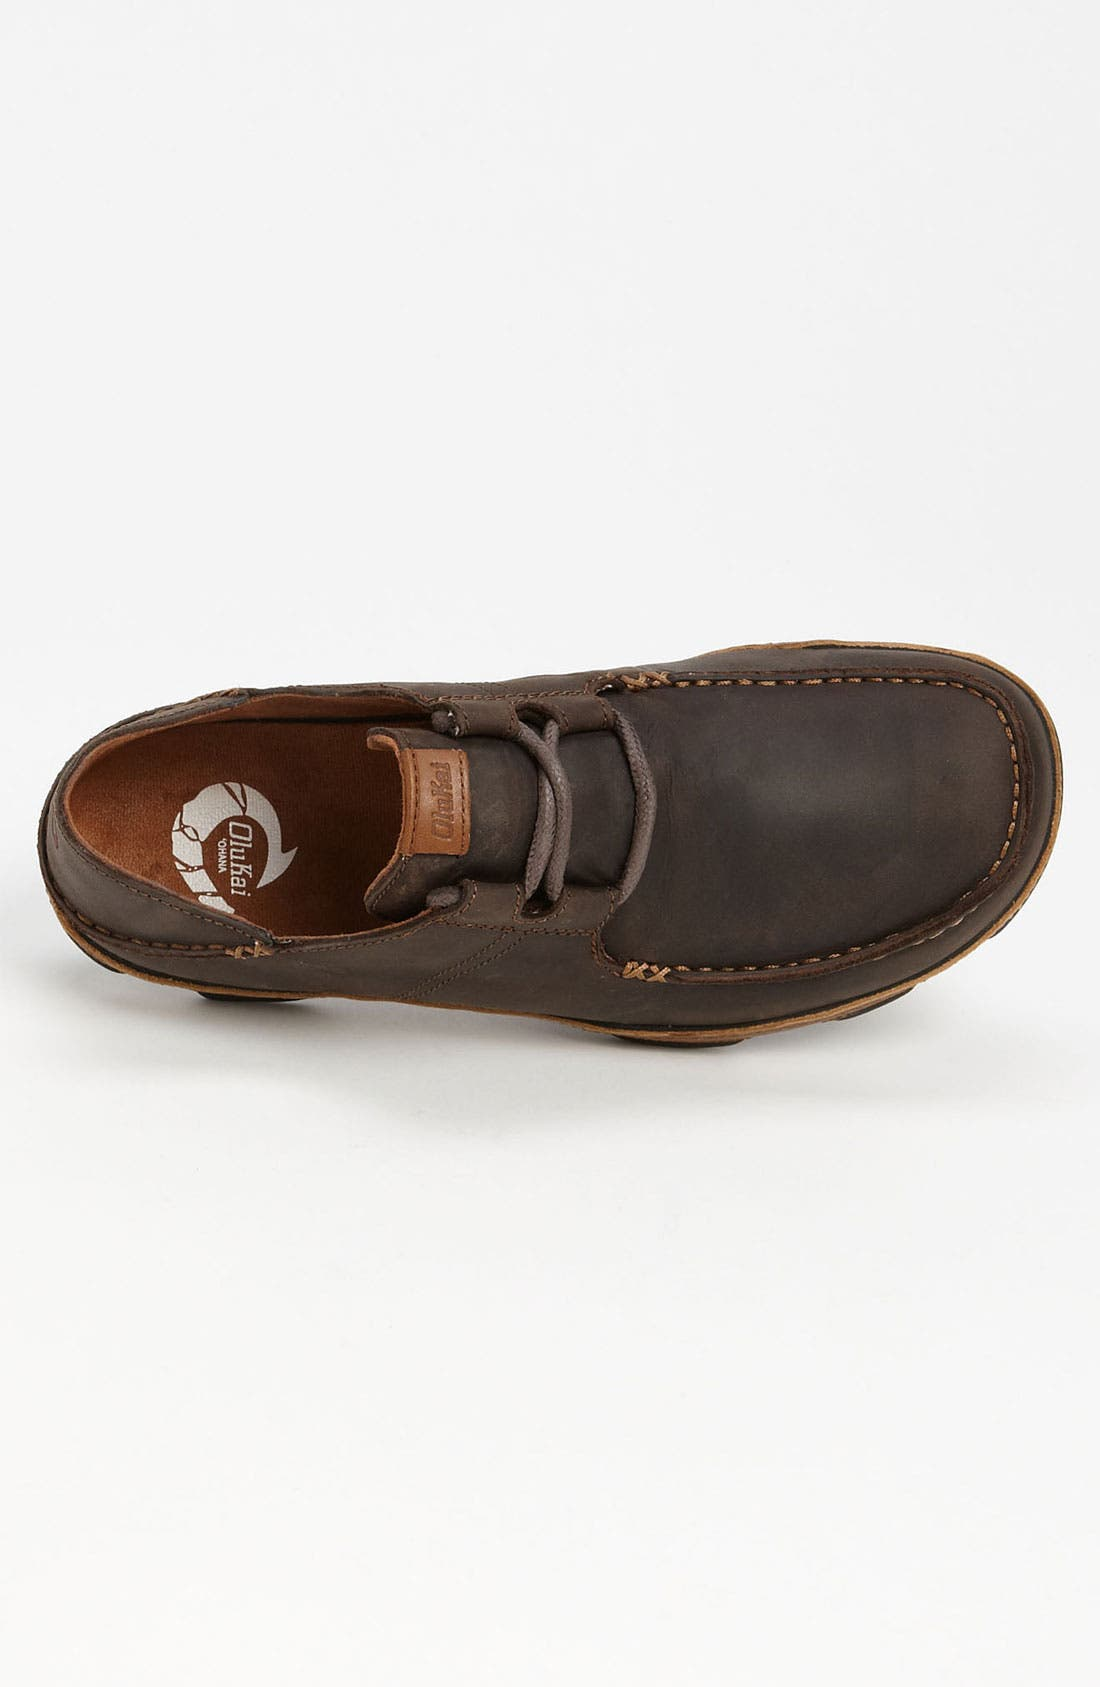 'Ohana' Lace Up,                             Alternate thumbnail 4, color,                             DARK WOOD / TOFFEE